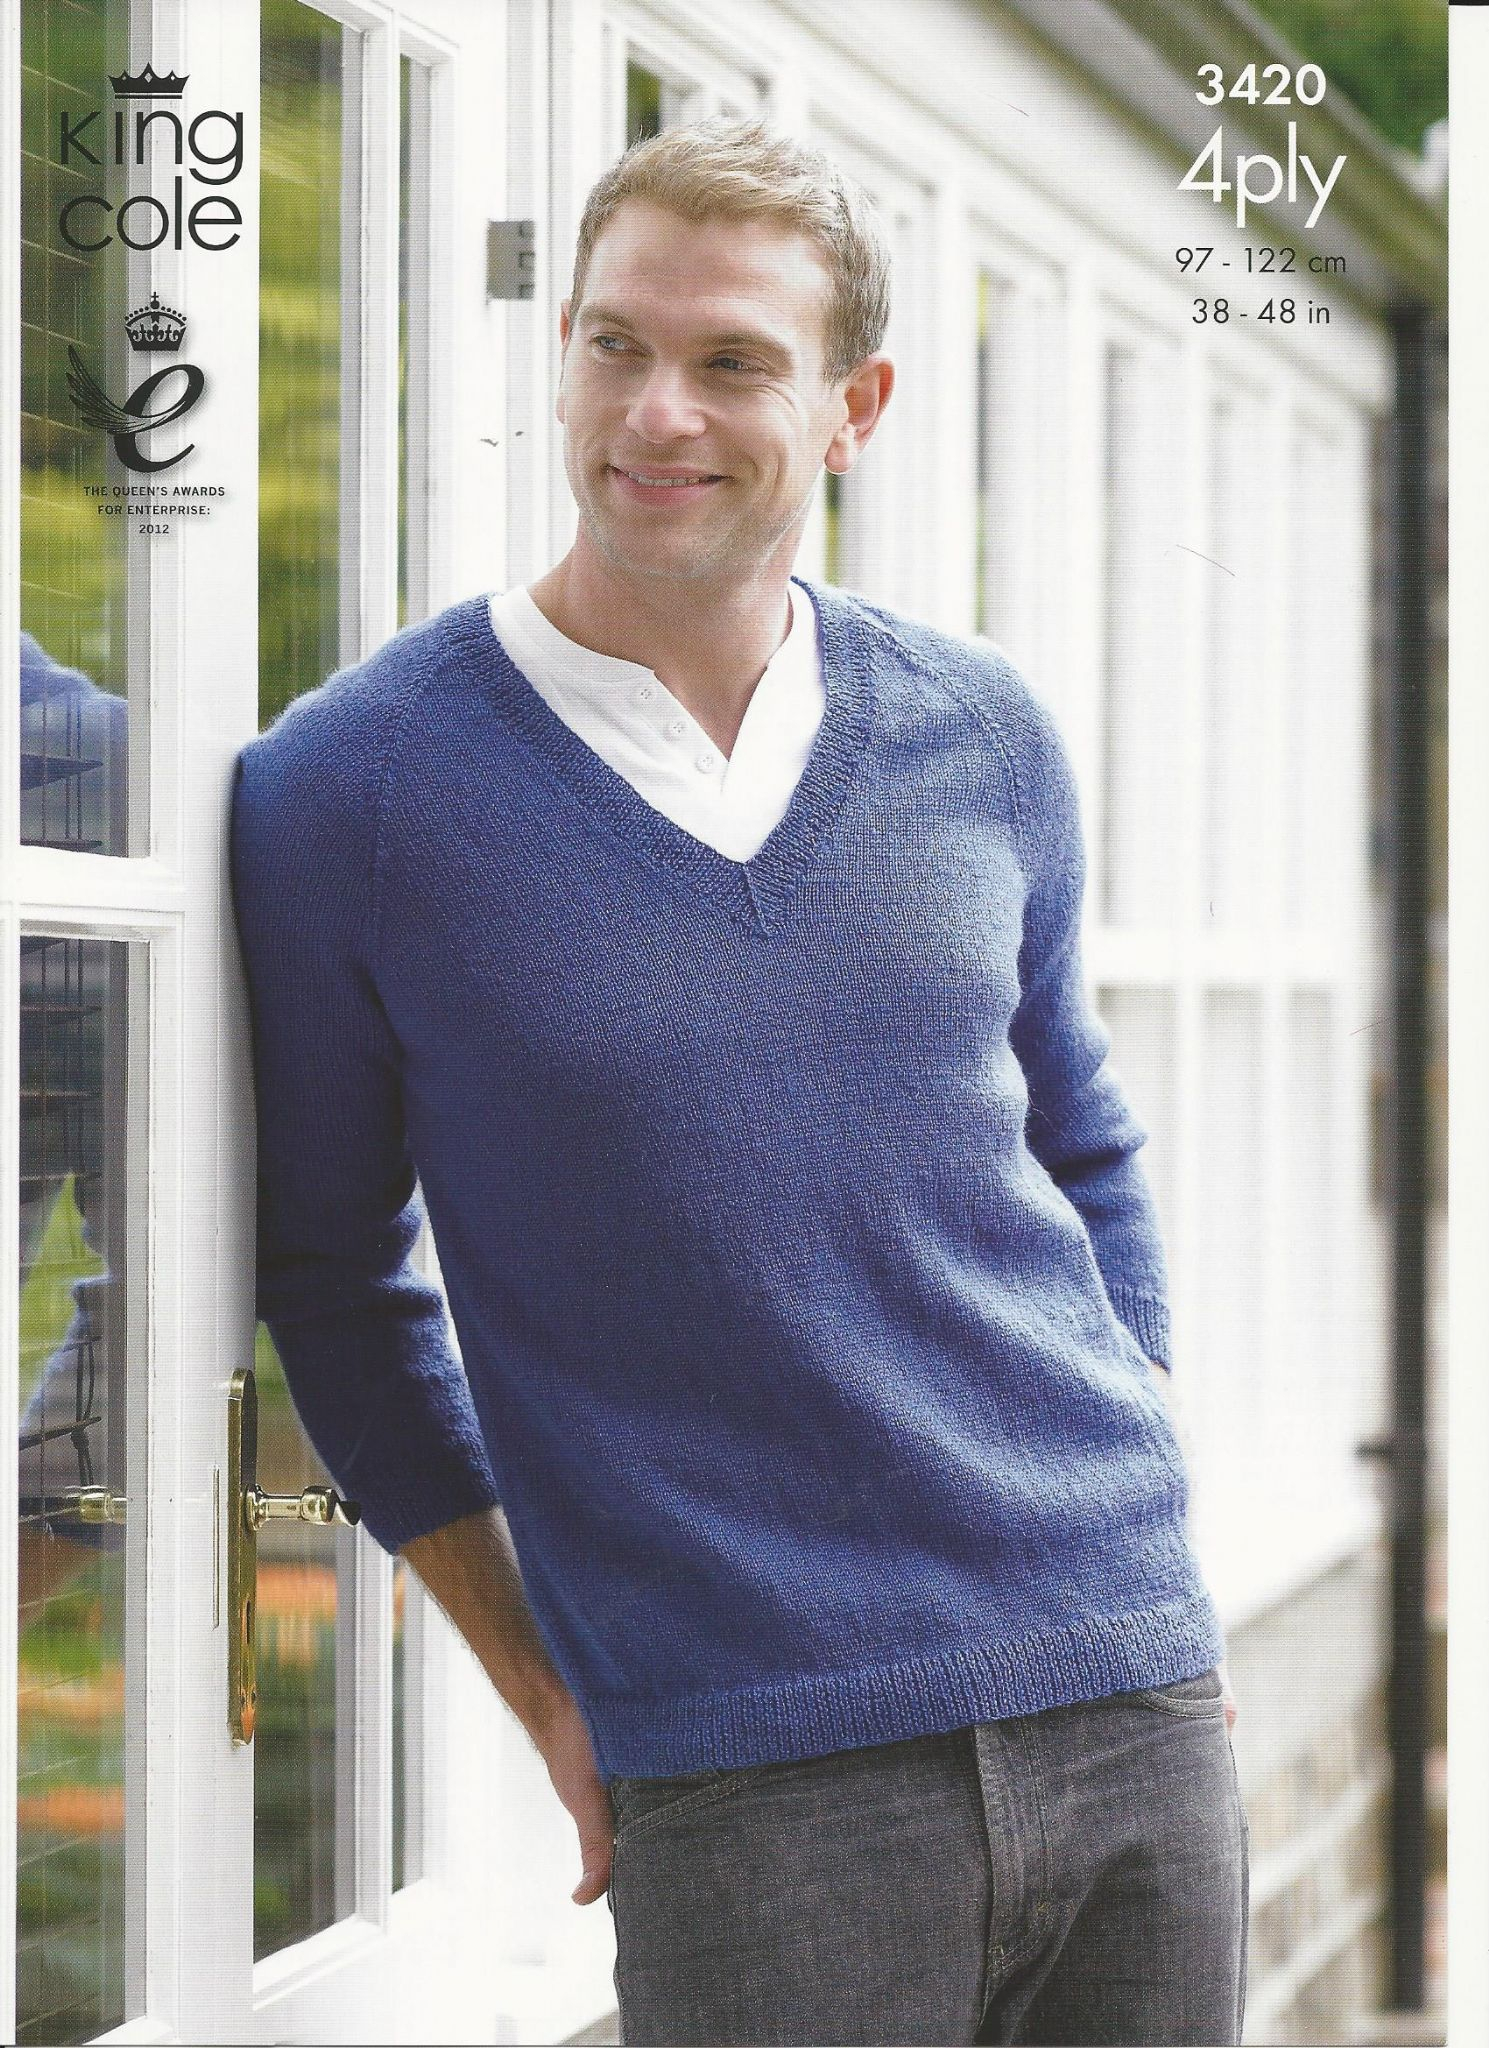 Mens Knit Patterns King Cole Mens Sweater And Cardigan 4ply Knitting Pattern 3420